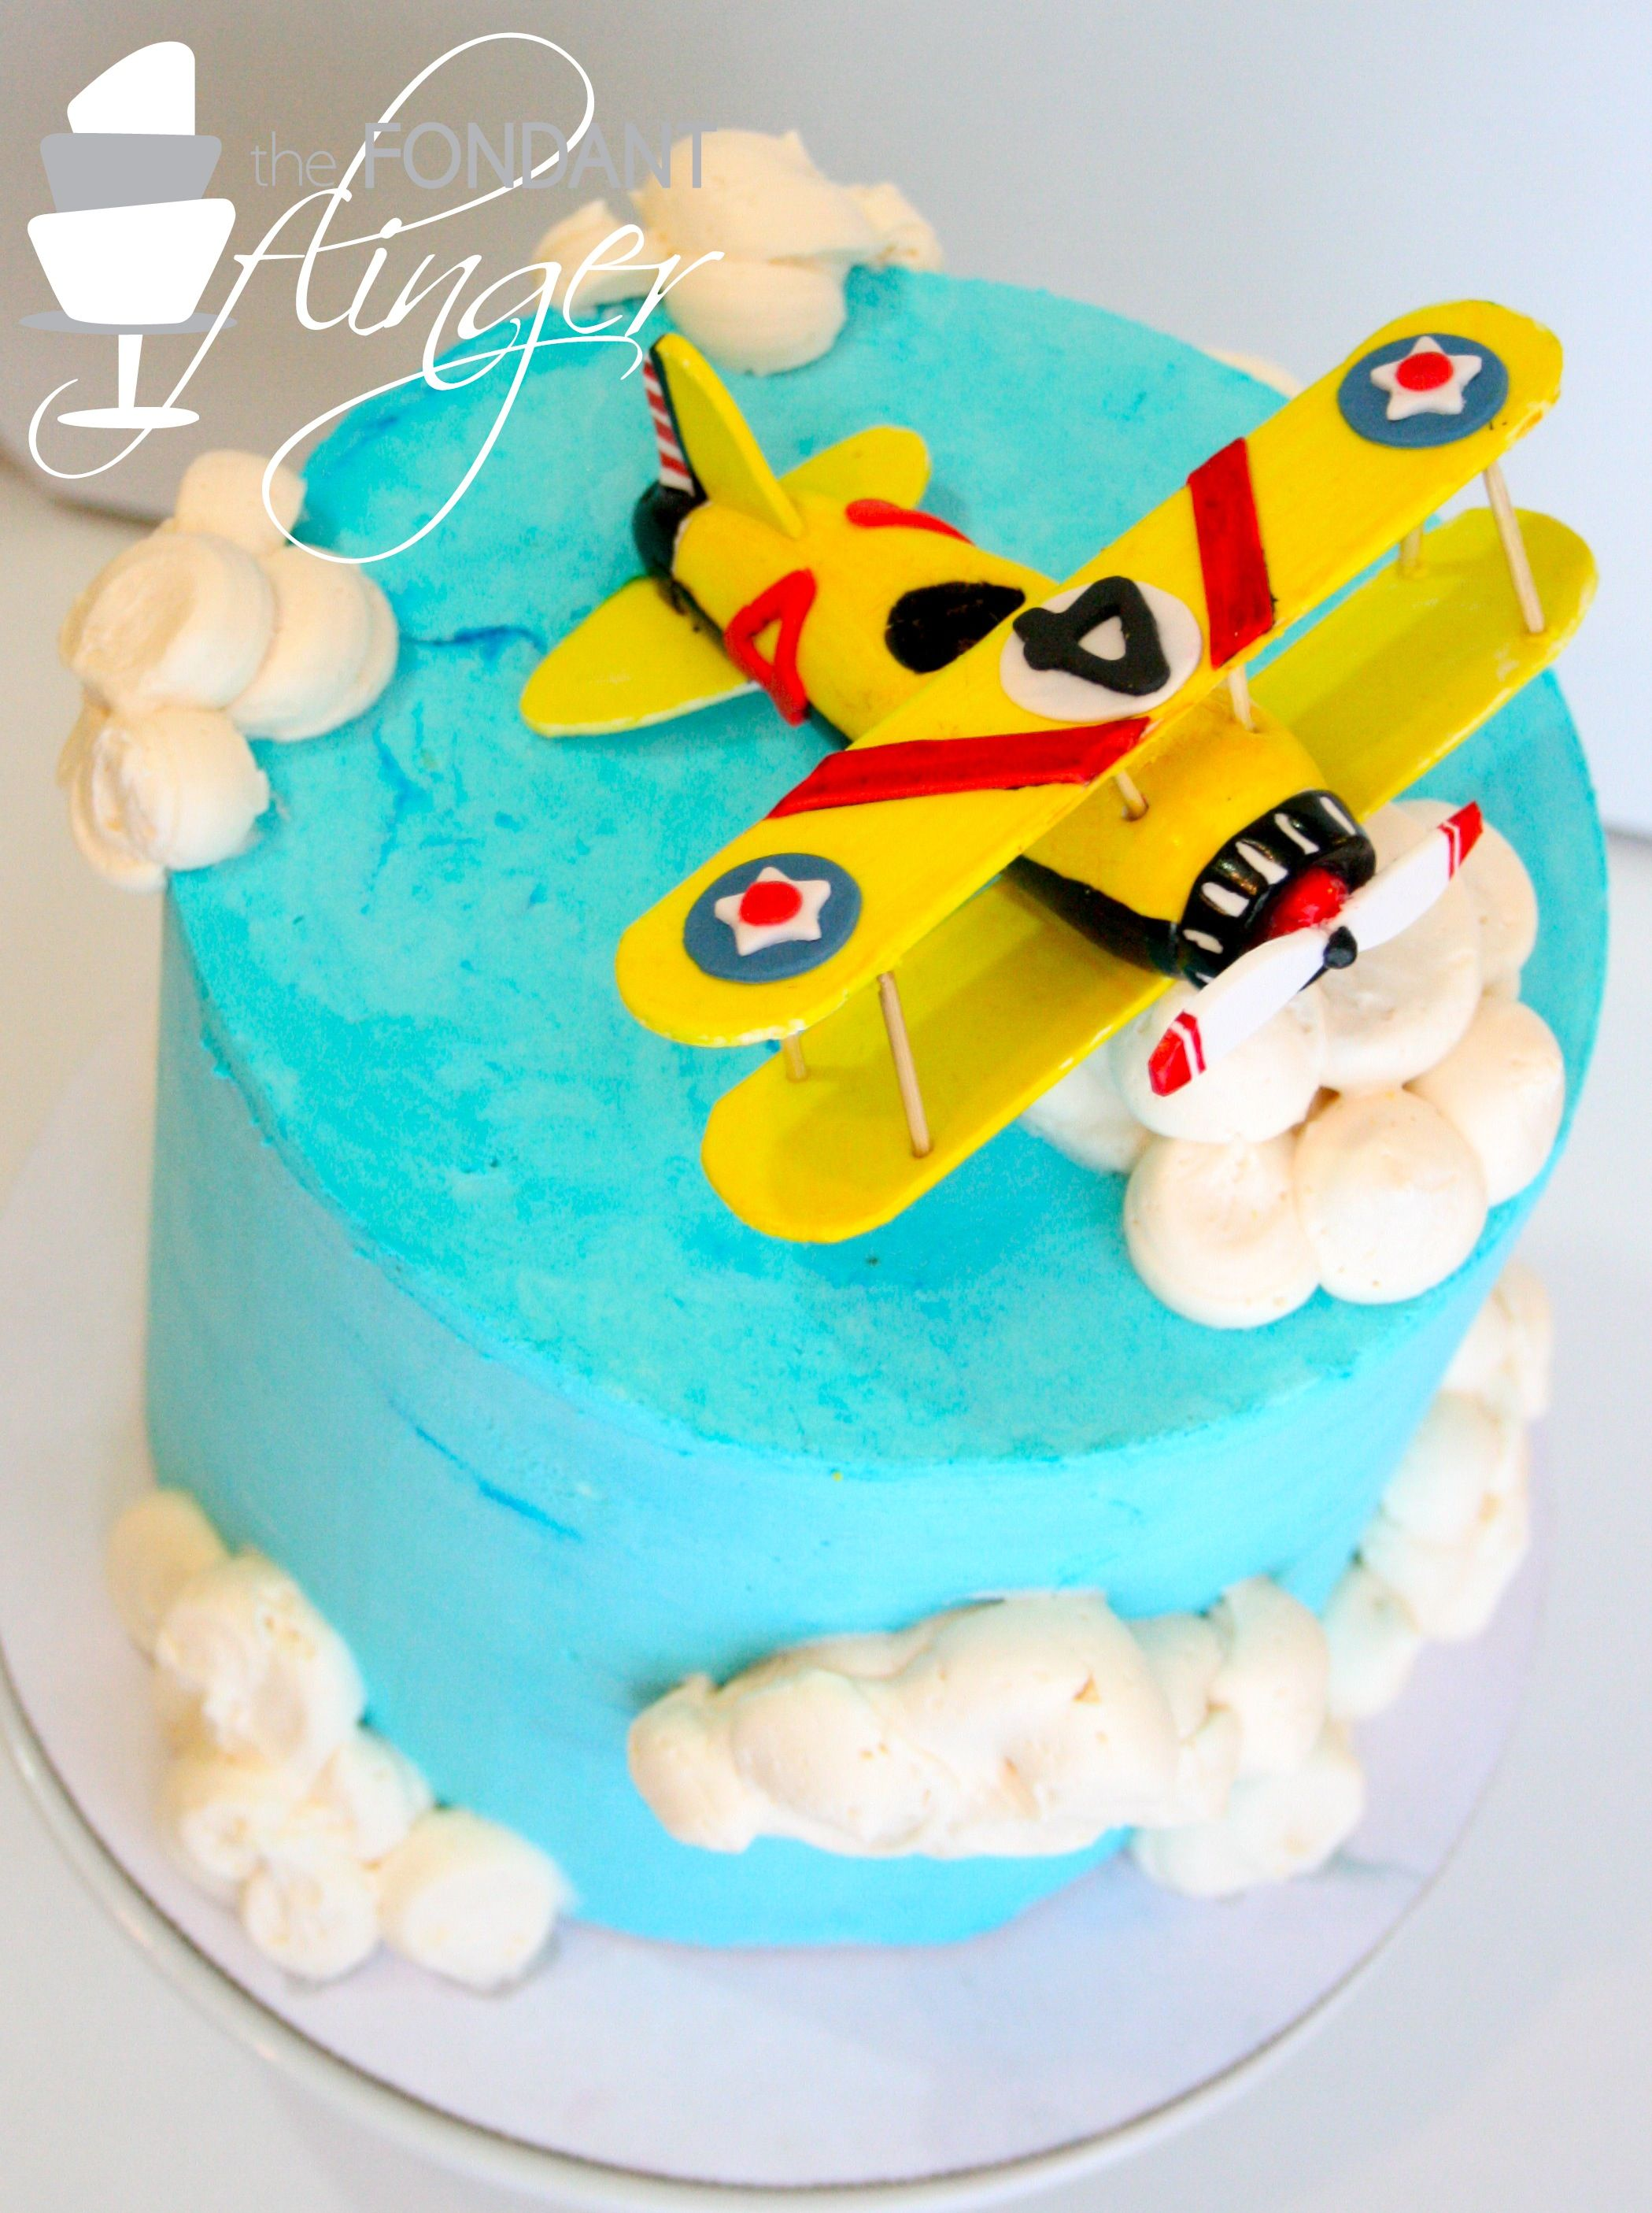 vintage airplane cake 50er ideen pinterest flugzeugkuchen fondant deko und kuchen ideen. Black Bedroom Furniture Sets. Home Design Ideas